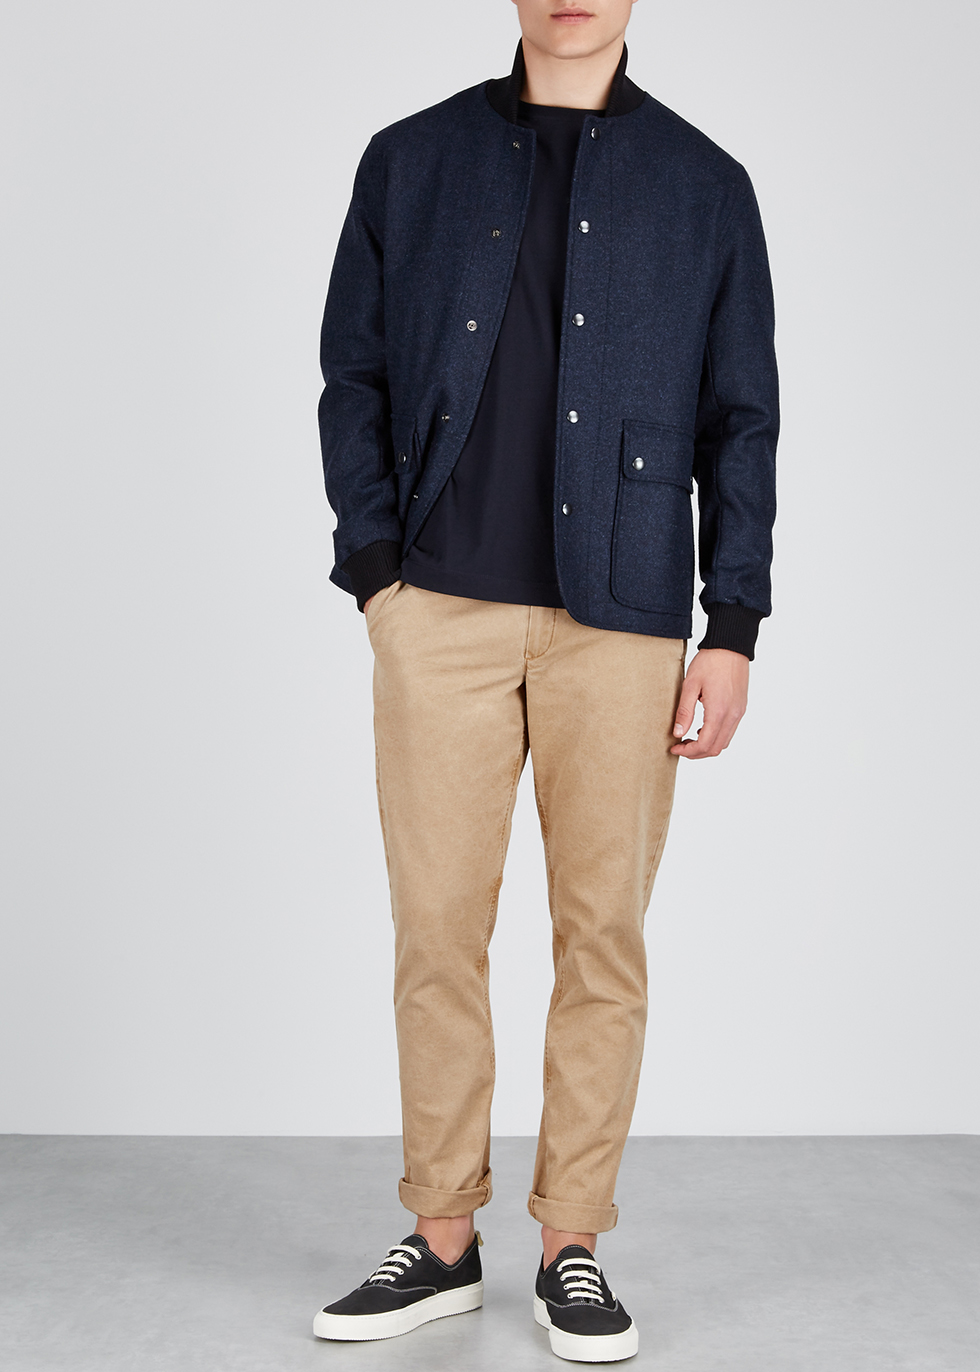 Permanents sand cotton chinos - A Kind of Guise